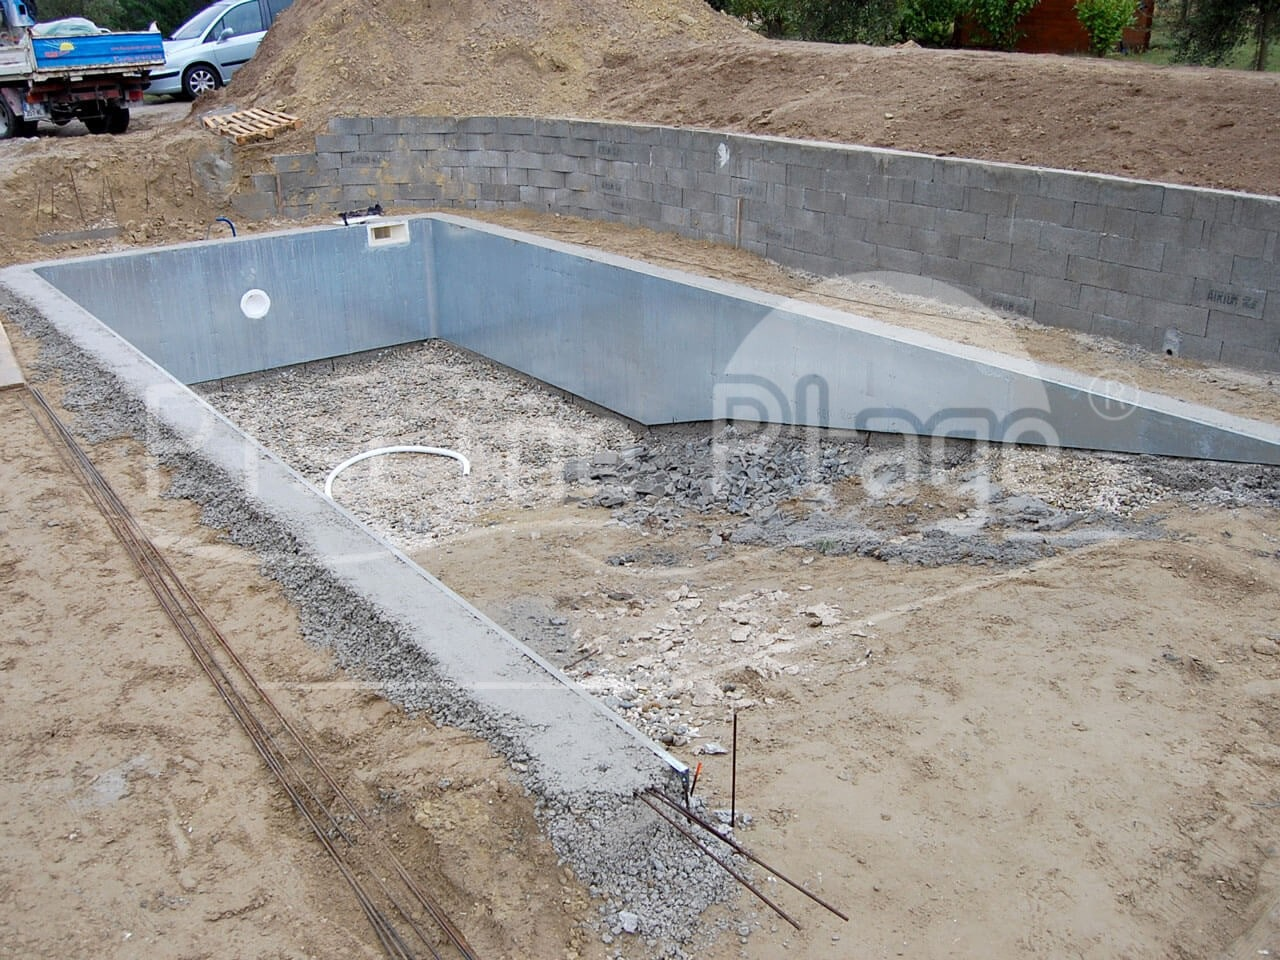 Notre technique de construction piscine plage for Construction piscine beton technique